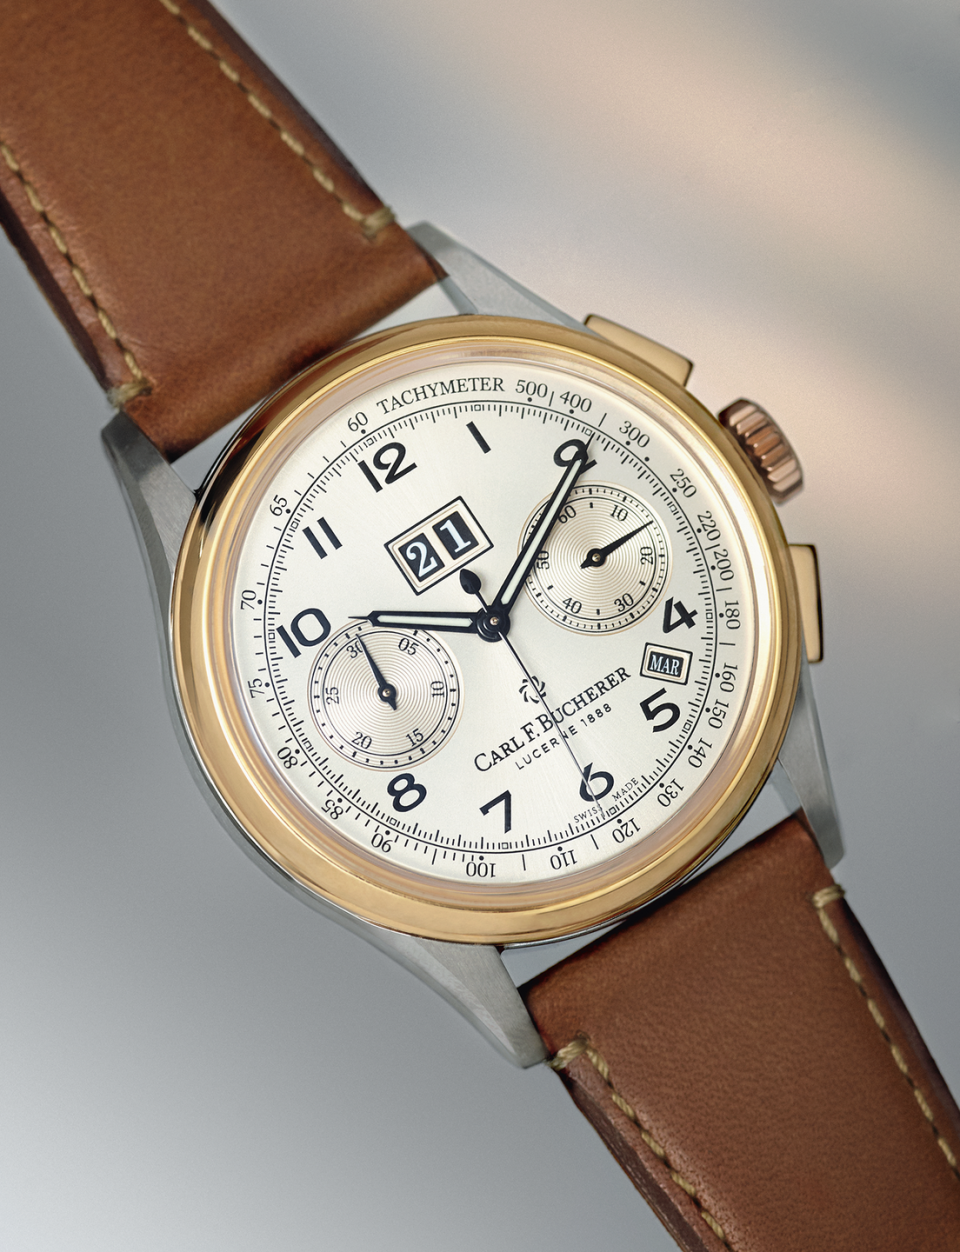 """<p>Heritage BiCompax Annual</p><p><a class=""""link rapid-noclick-resp"""" href=""""https://www.bucherer.com/uk/en/watches/our-brands/carl-f-bucherer?categories=watches&filter=%7Bwatches%7D%7Bfacetedsecondlevelcategory_s%7D%7Bcarl-f-bucherer%7D&gclid=CjwKCAiA8qLvBRAbEiwAE_ZzPbqj1QvVqlT8IWv2qdsghzKQpRx4Ib6hu4VMb6IvC6SIZf-Xghtj7RoC8KkQAvD_BwE&sort=relevance#activePage=0"""" rel=""""nofollow noopener"""" target=""""_blank"""" data-ylk=""""slk:SHOP"""">SHOP</a></p><p> The resurgent independent watchmaker's latest model ticks off a number of current trends. The 41mm Heritage Bicompax Annual is based on a Fifties' archive piece with a """"bicompax"""" two-counter dial, giving it a mid-century feel (tick); it's available in two-tone steel and rose gold (tick); and it's also limited (tick). There'll be 888 of both the two-tone and steel models, determined by the company's founding year of 1888, rather than out of deference to gamblers. It's decent value, too. Behind that balanced dial, there's a clever movement fuelling a chronograph and an annual calendar with date and month indications that only need adjusting on 1 March. The steel is a touch over £5k, with a premium for the solid gold detailing in the two-tone. Modest by the industry's lengthy yardstick.</p><p> £8,000; <a href=""""https://www.carl-f-bucherer.com/en?gclid=CjwKCAiA8qLvBRAbEiwAE_ZzPfih-oZpDgK_Sn65iKAO1F-OEzbDri_2DdjUWB5zuno7Fw0kl36oehoCamIQAvD_BwE"""" rel=""""nofollow noopener"""" target=""""_blank"""" data-ylk=""""slk:carl-f-bucherer.com"""" class=""""link rapid-noclick-resp"""">carl-f-bucherer.com</a><br></p>"""